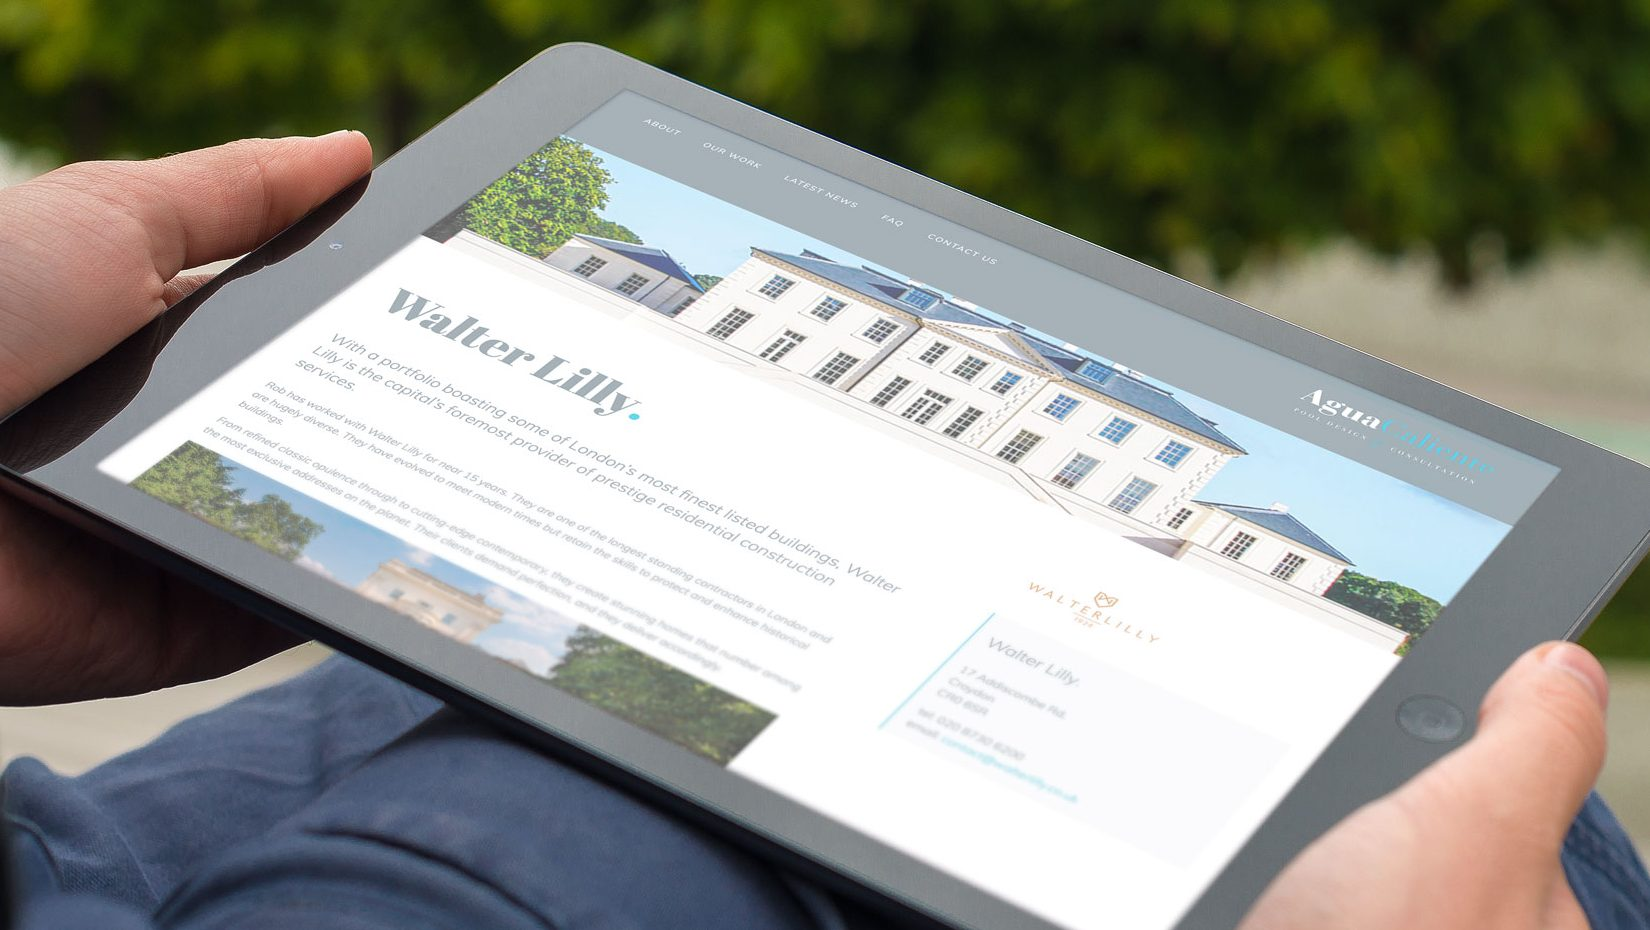 ipad showing agua caliente responsive website design featuring walter lilly